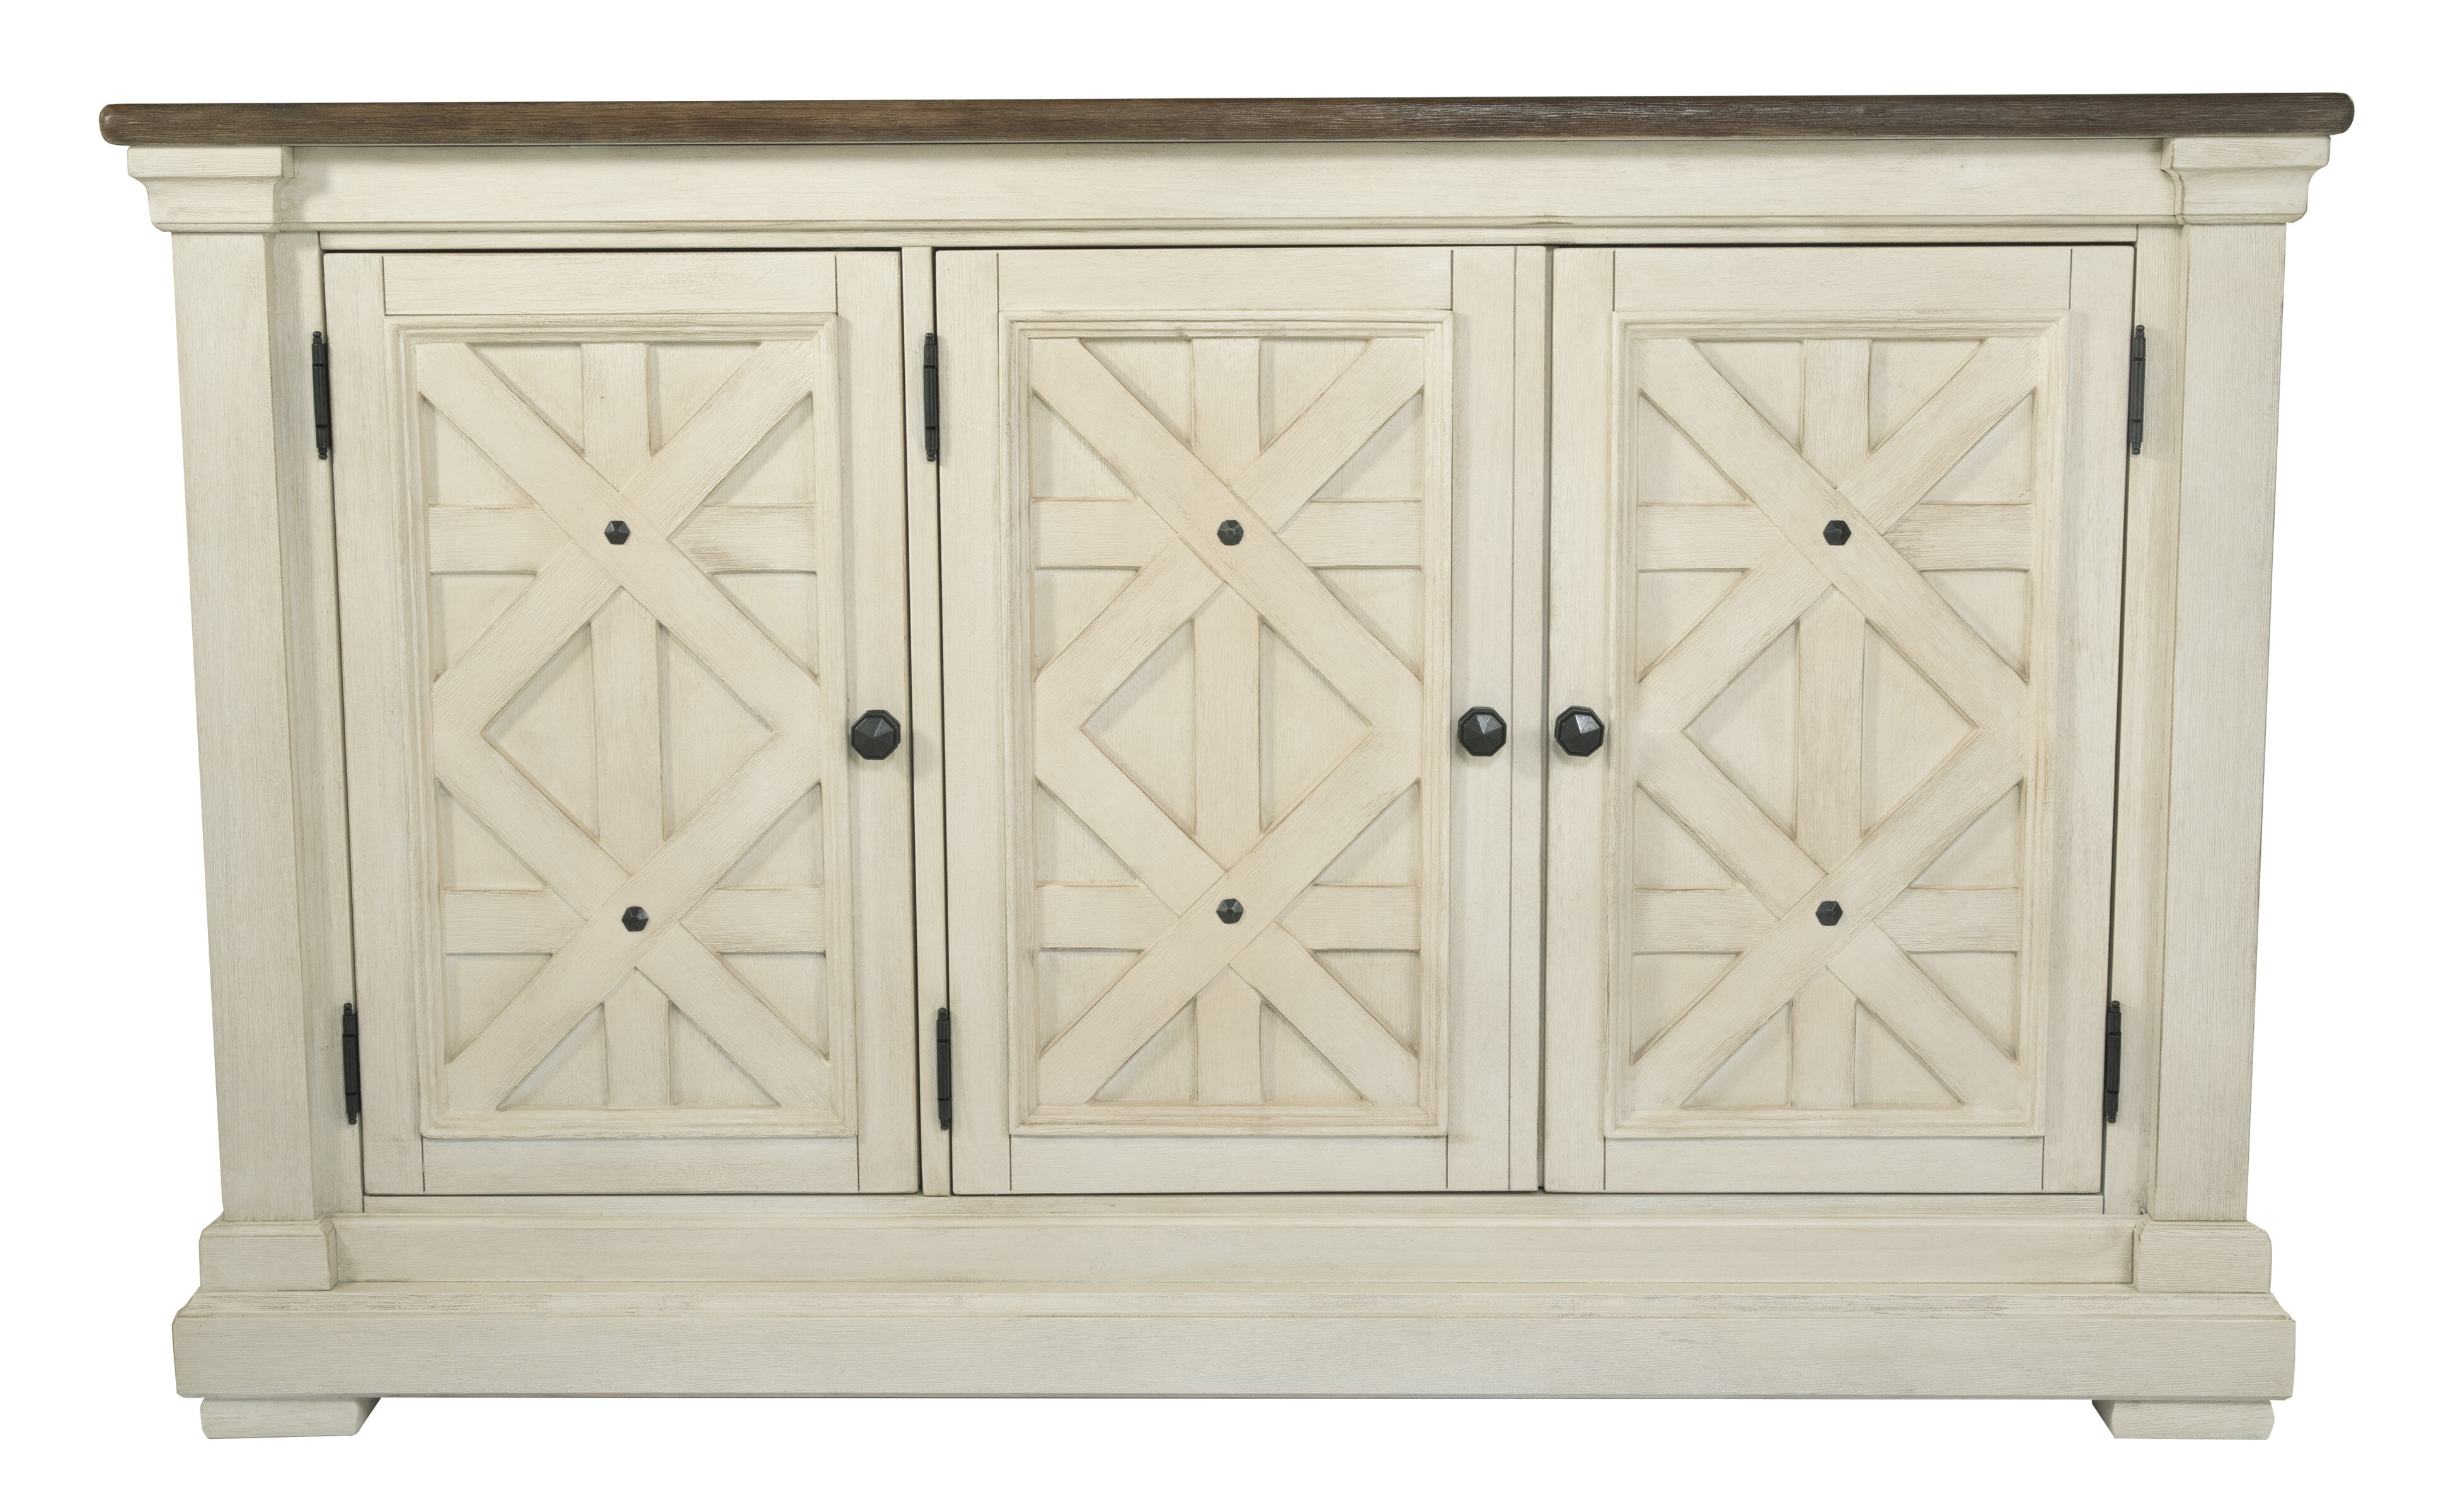 Farmhouse & Rustic White Wood Sideboards & Buffets | Birch Lane within Papadopoulos Sideboards (Image 7 of 30)